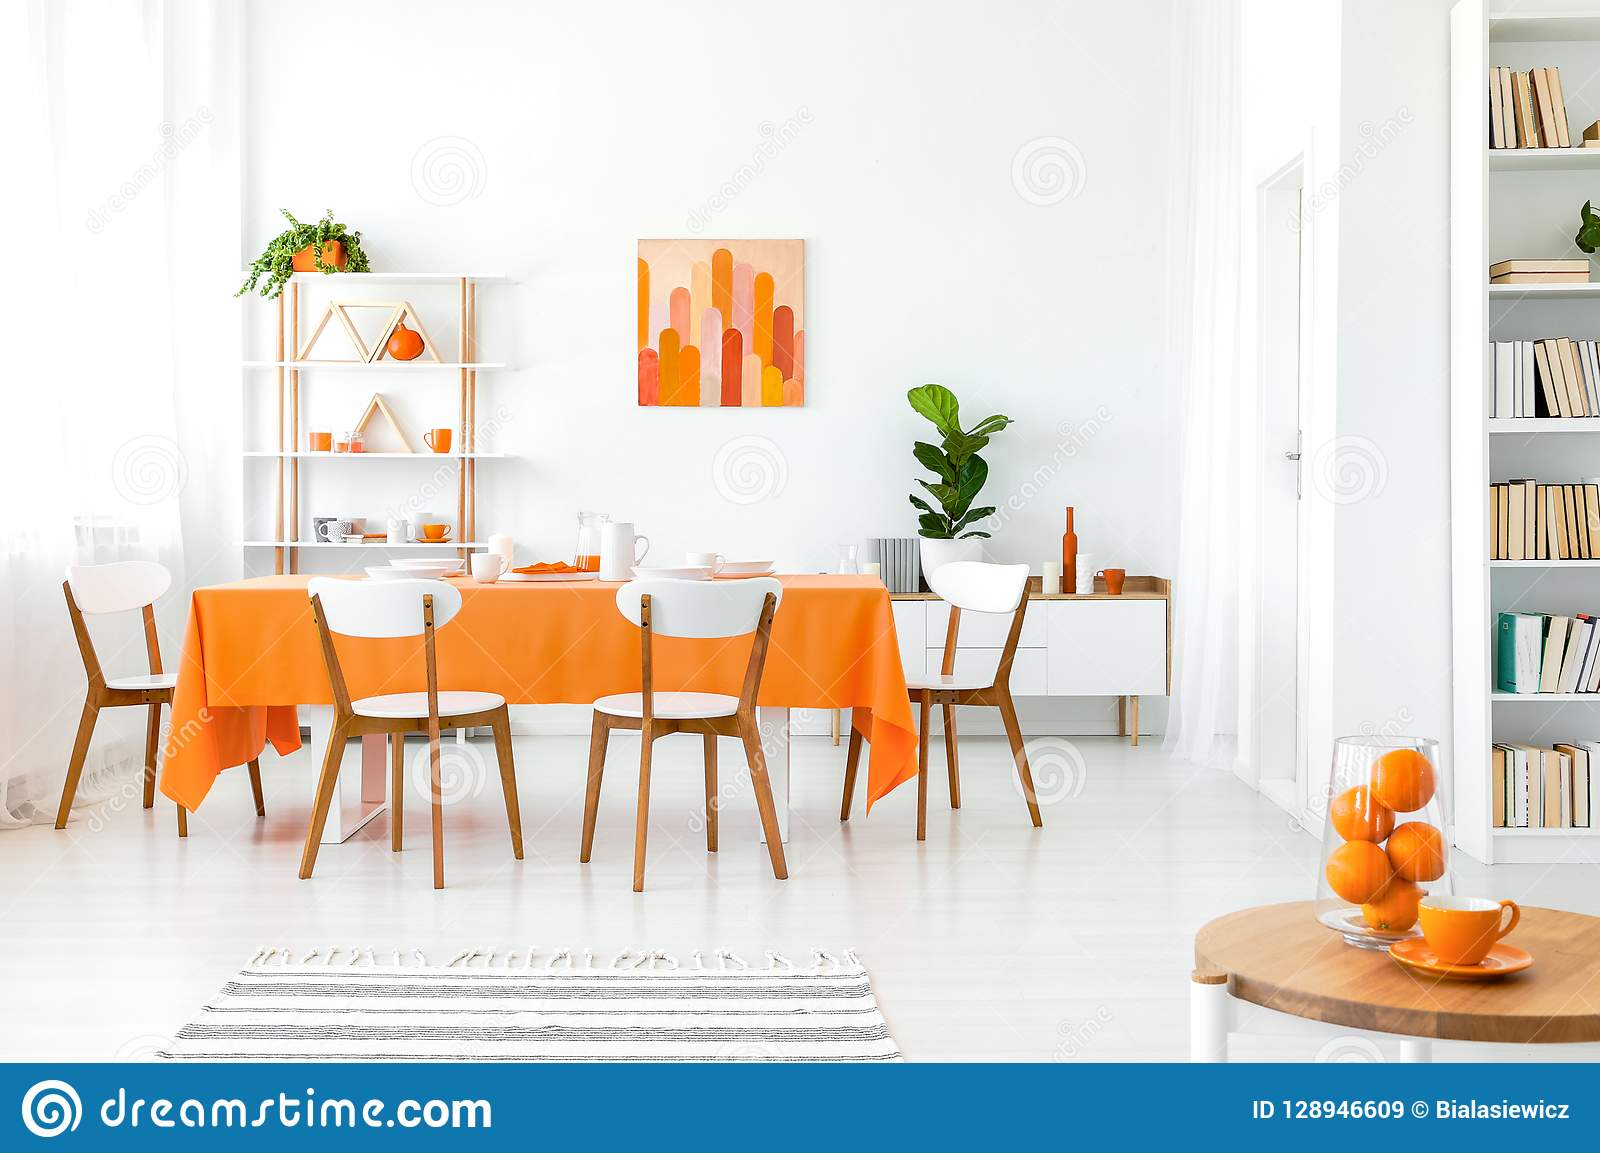 White and orange dining room with painting on the wall, bookshelf in the corner and green plant